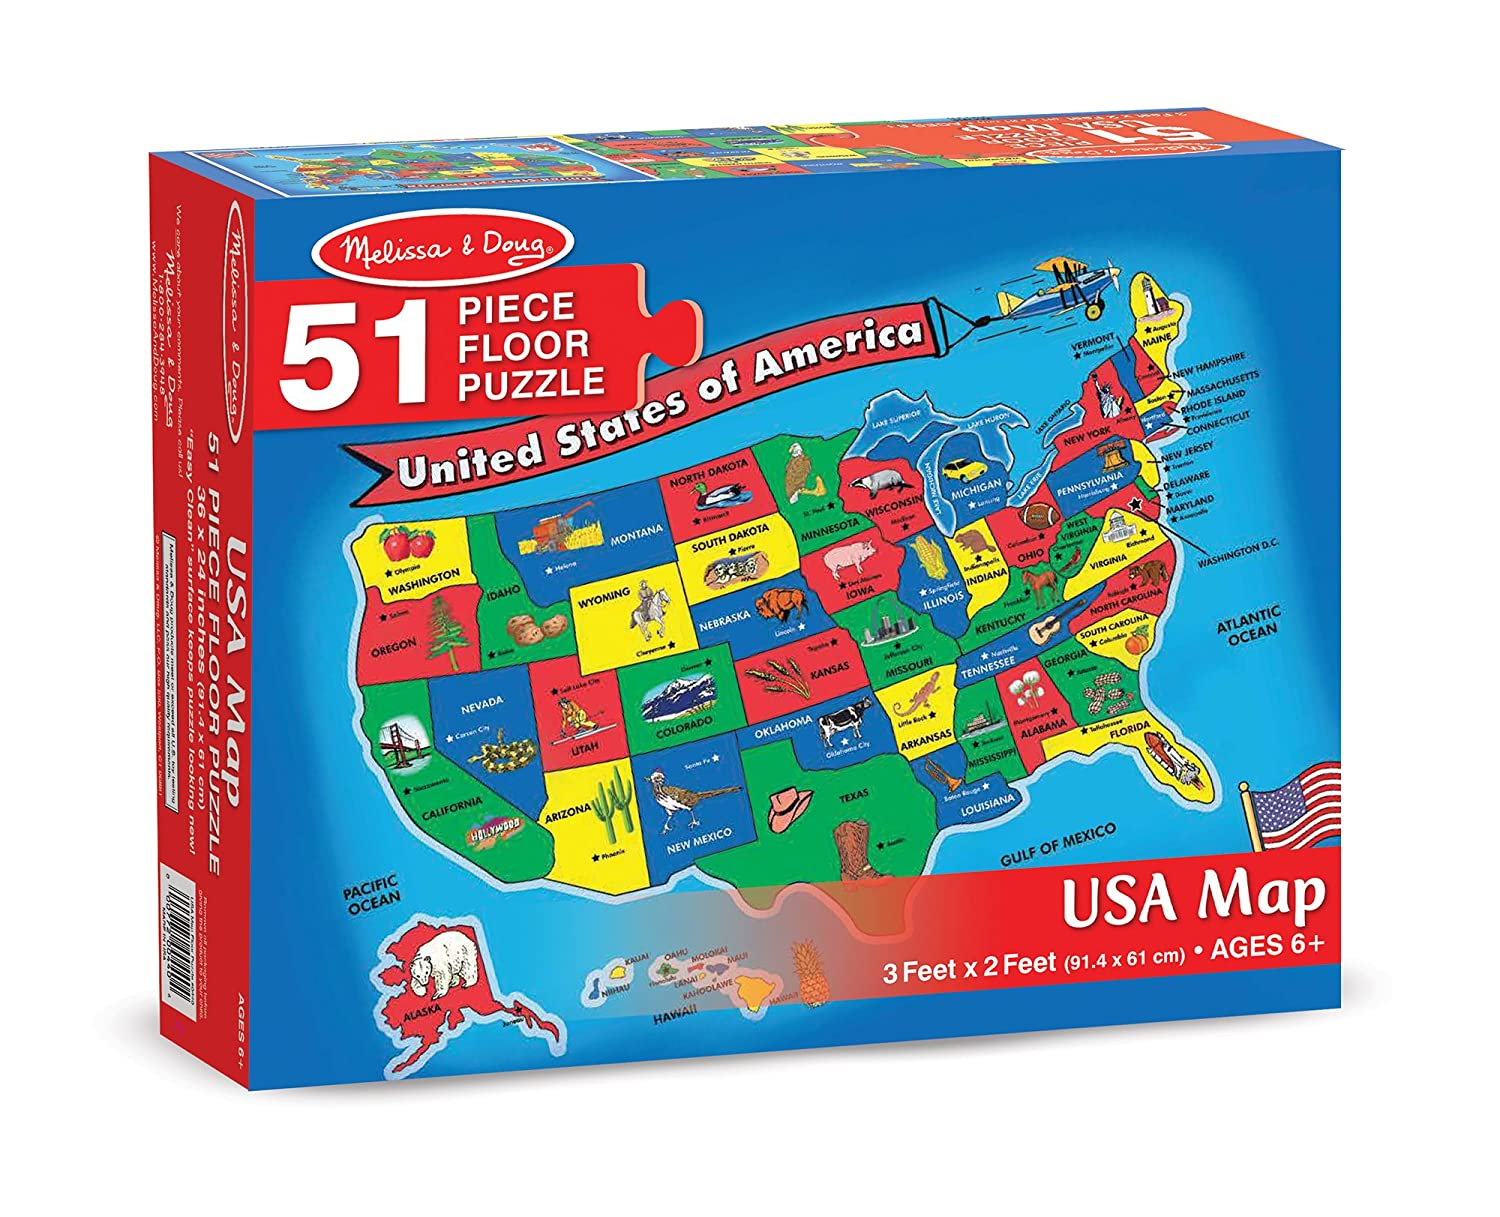 Amazoncom Melissa Doug USA Map Floor Puzzle Pcs X - Us map puzzle for toddlers